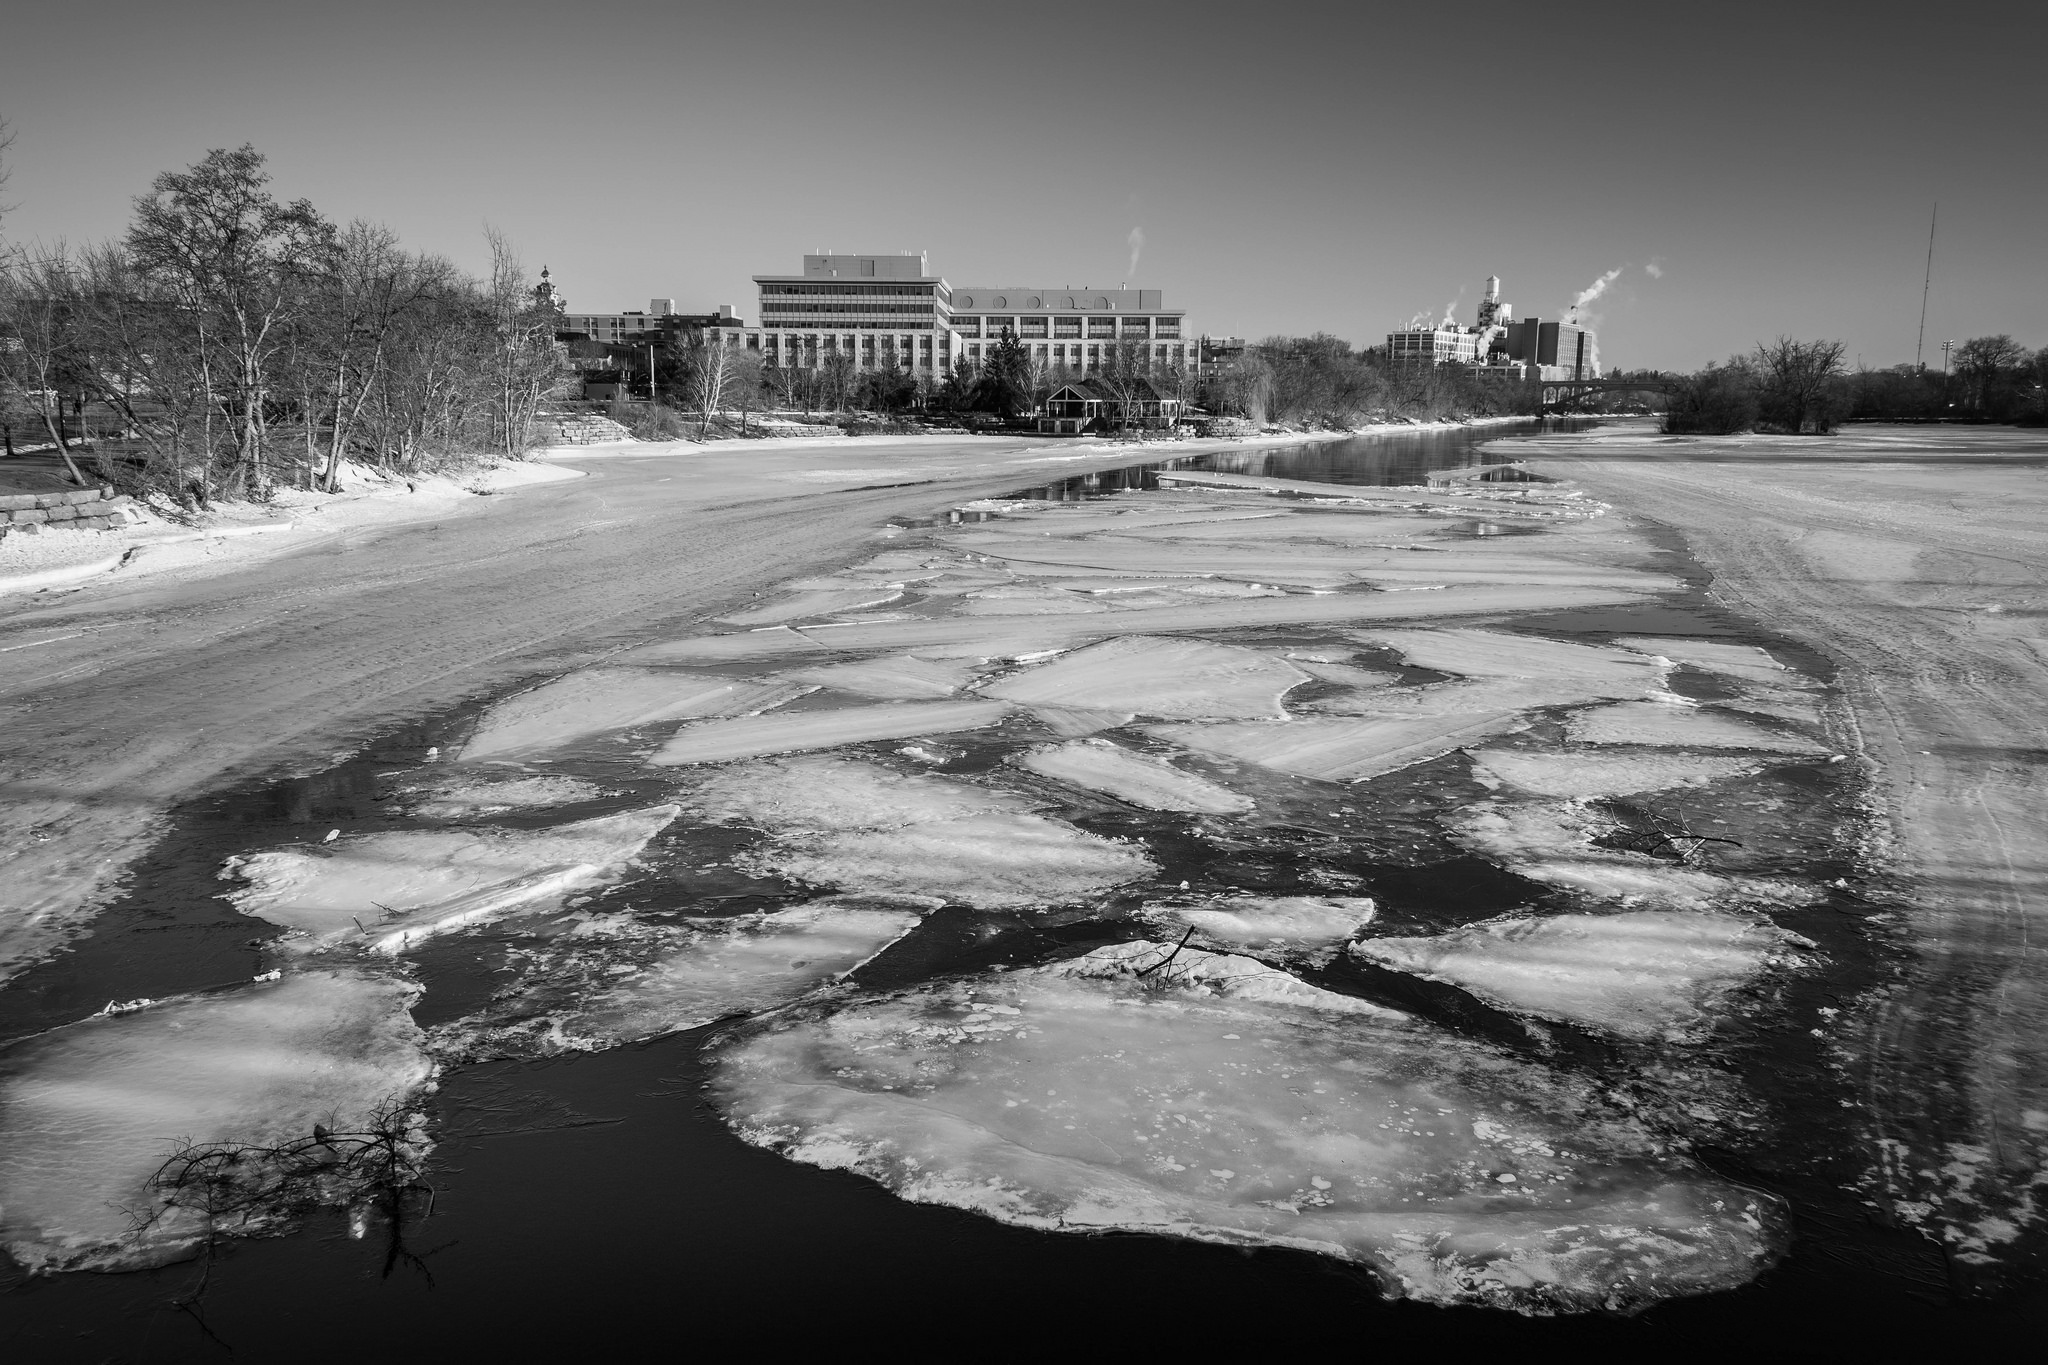 Ice Flow on the Otonabee River (1/80s, f/6.3, ISO100)